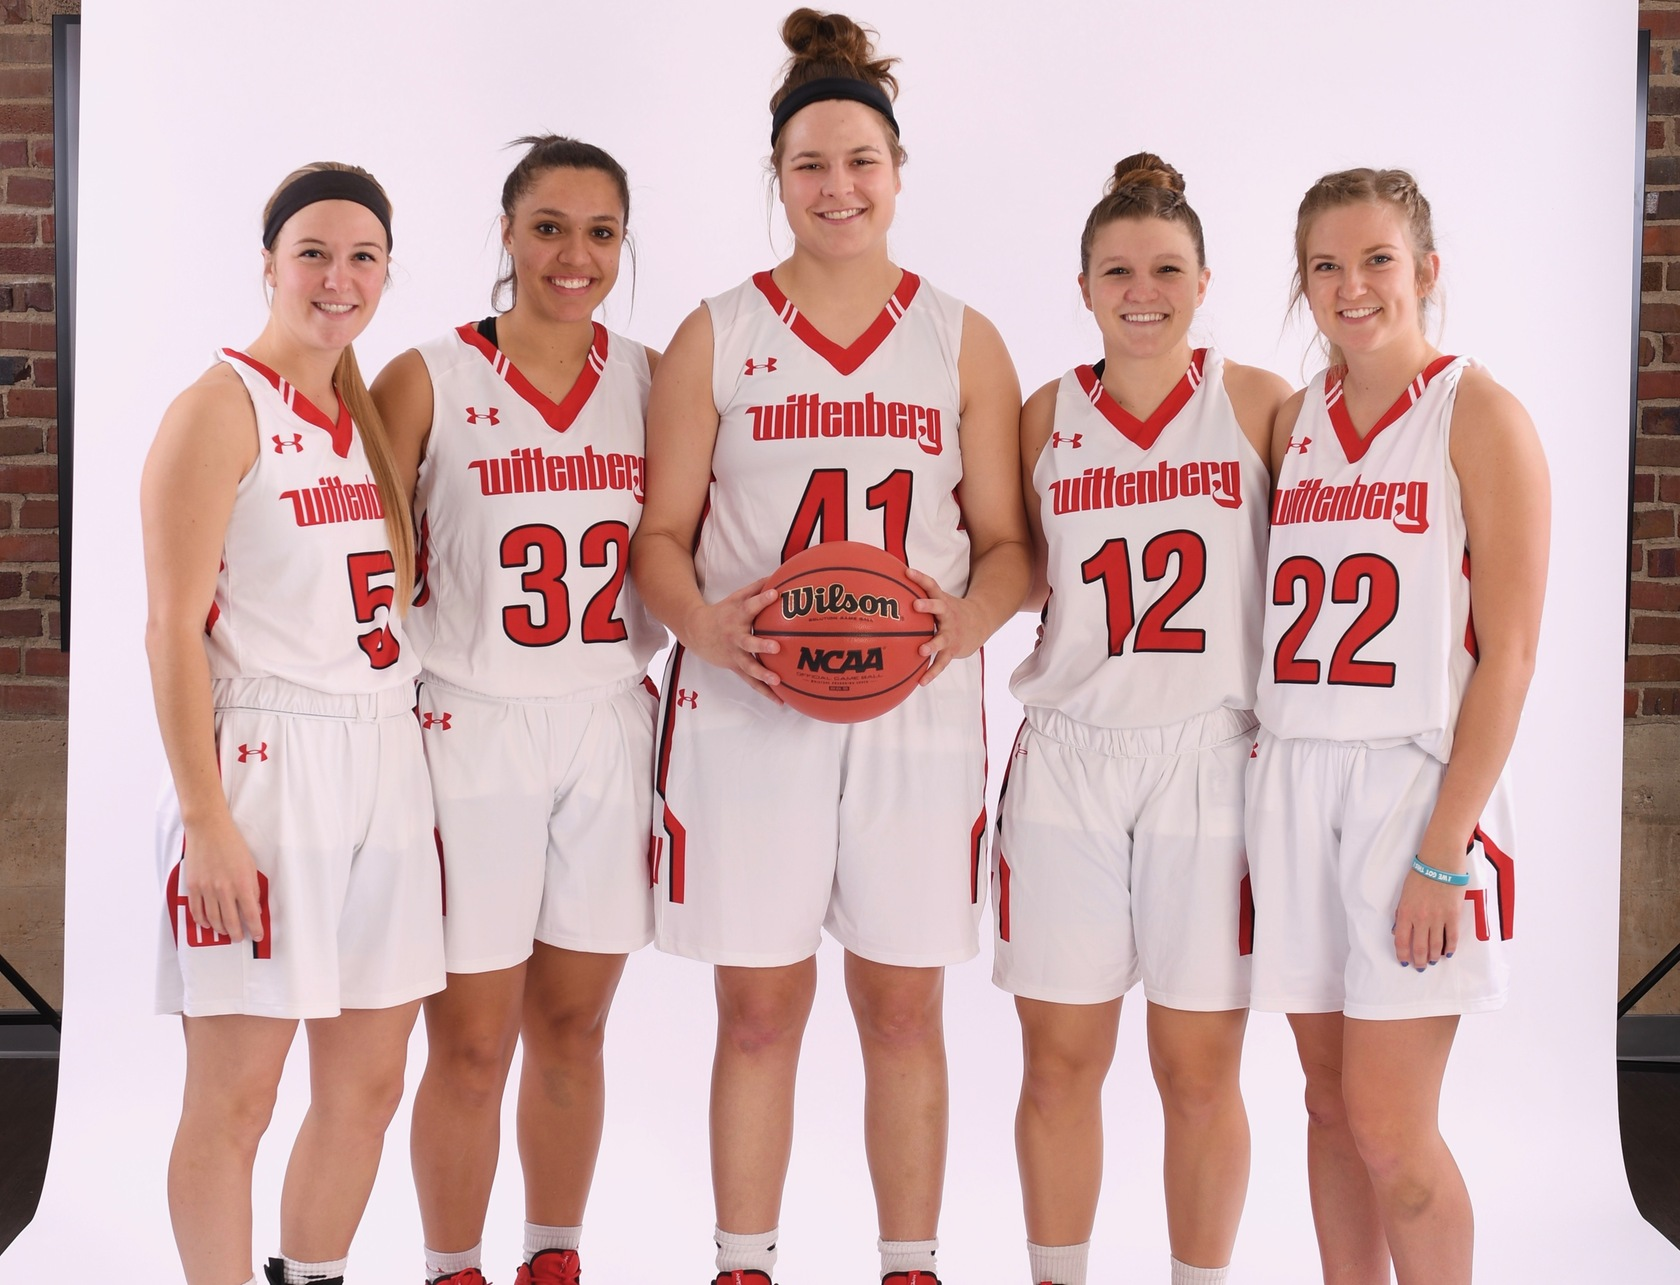 After falling in the semis of the 2019 NCAC Tournament against DePauw, the Wittenberg women's basketball senior class closed out their careers with an overall record of 51-54